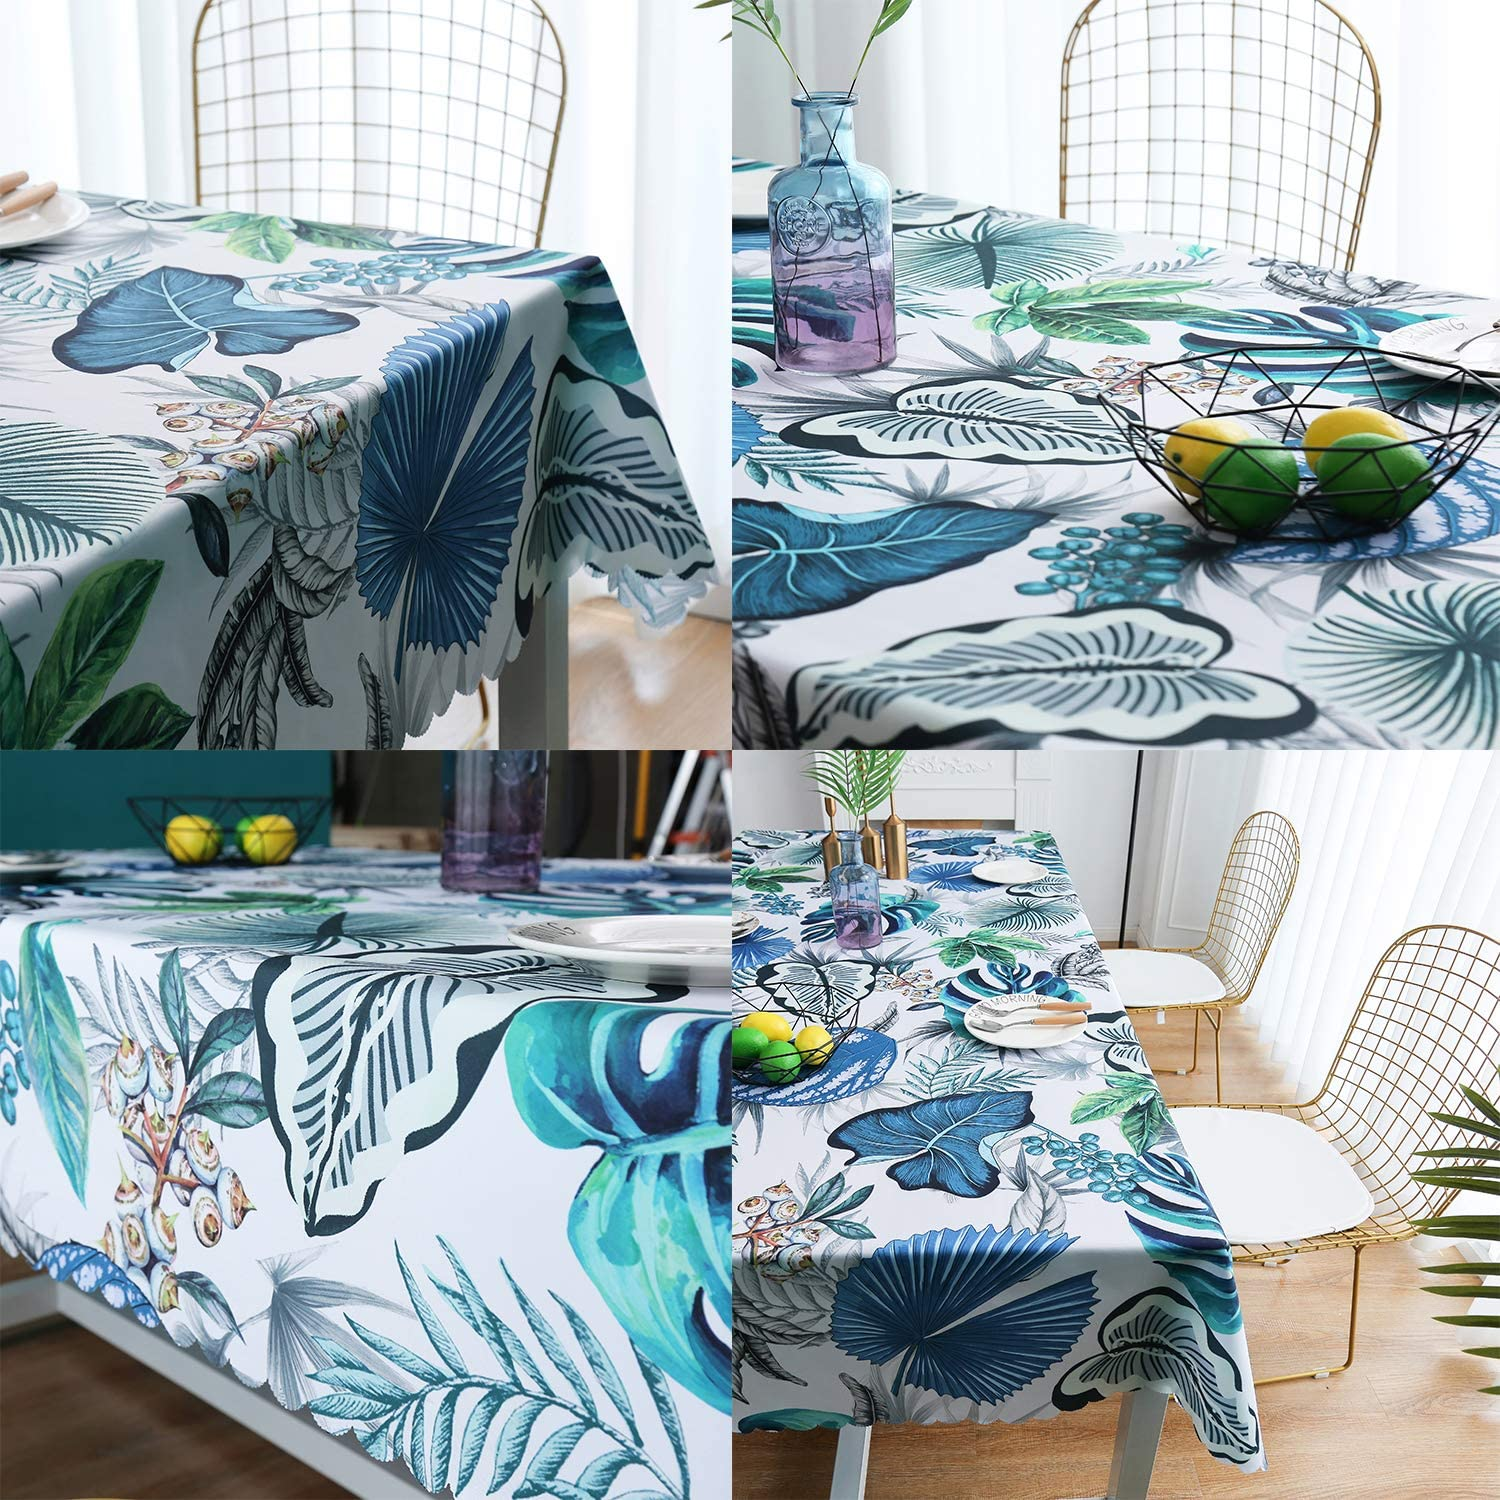 Kitchen Dining Indoor Outdoor Buffet Tabletop Decoration 60x84 Water-Proof Rectangle Table Cover Original Design Hand Drawing Art Print Table Cloth Avocados iLiveX Tablecloth